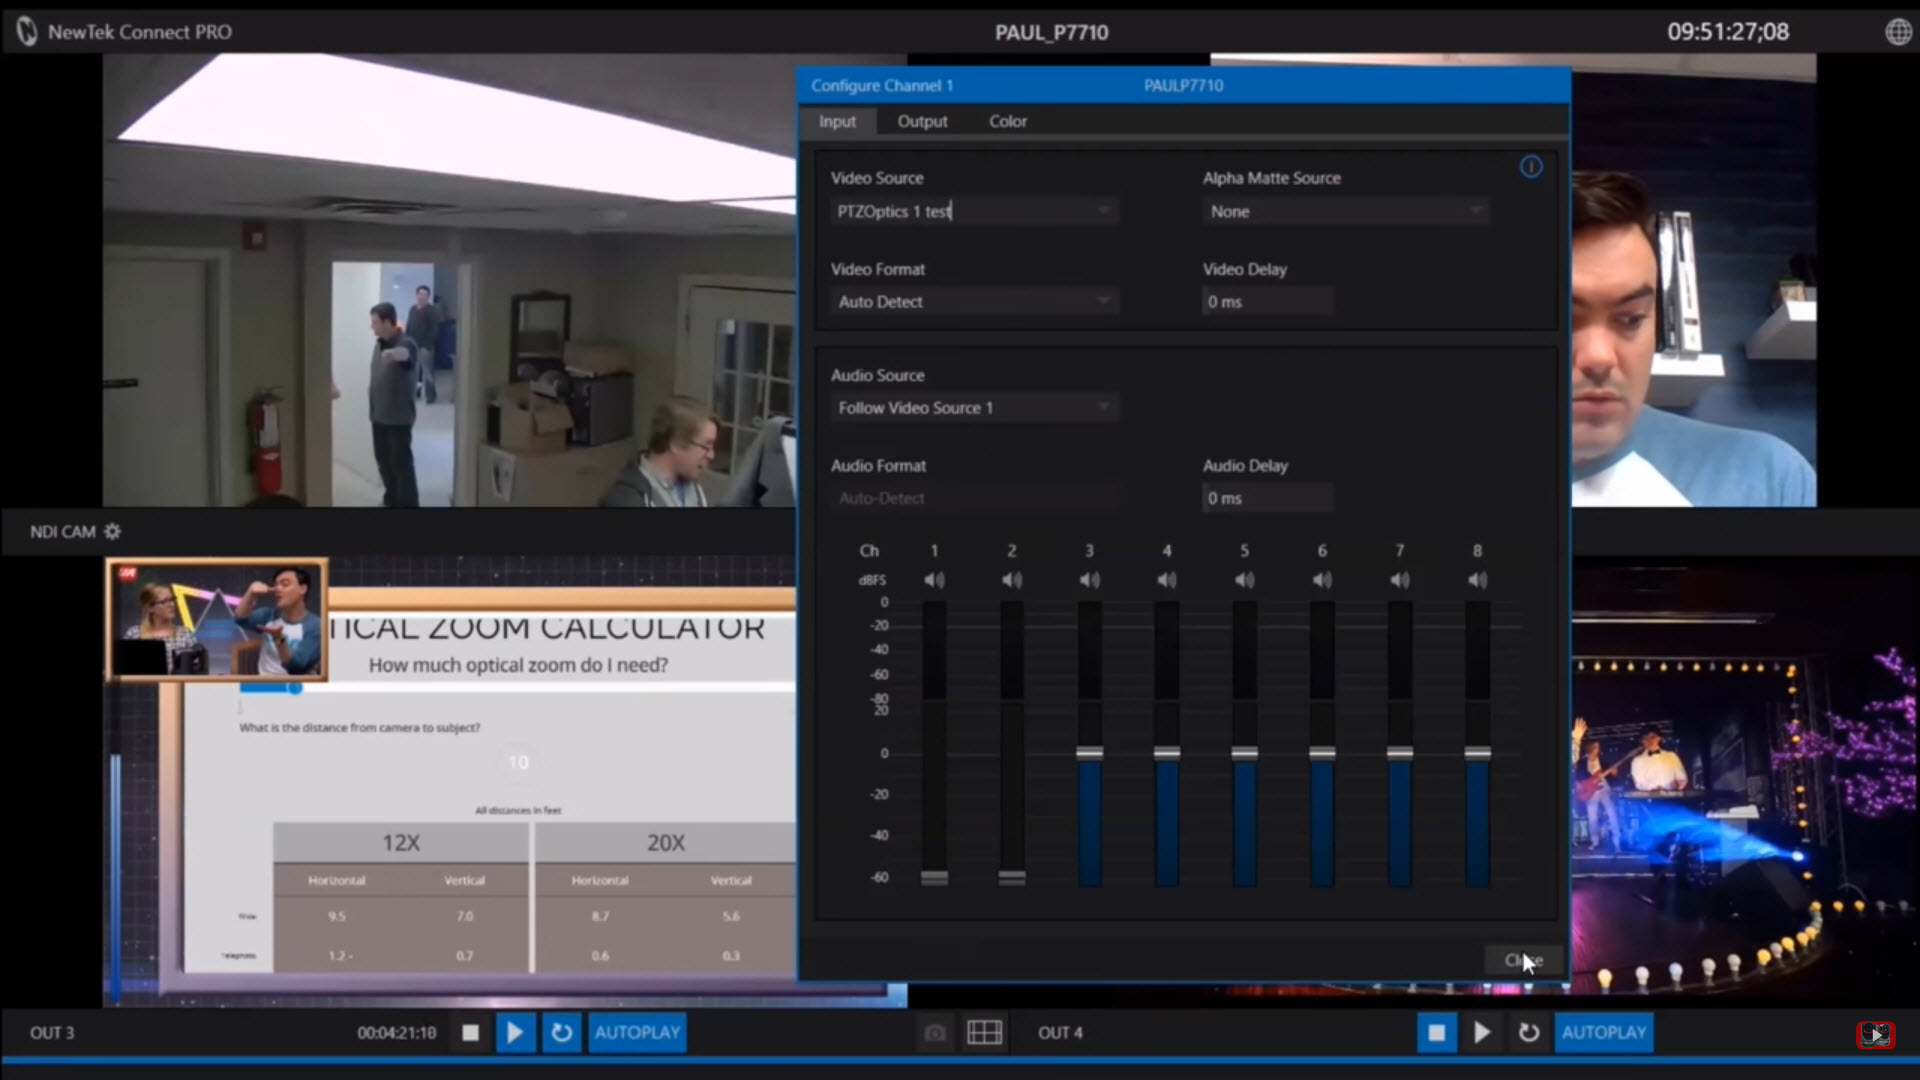 Configuring a PTZOptics camera as a source in NewTek Connect Pro. Click to enlarge.